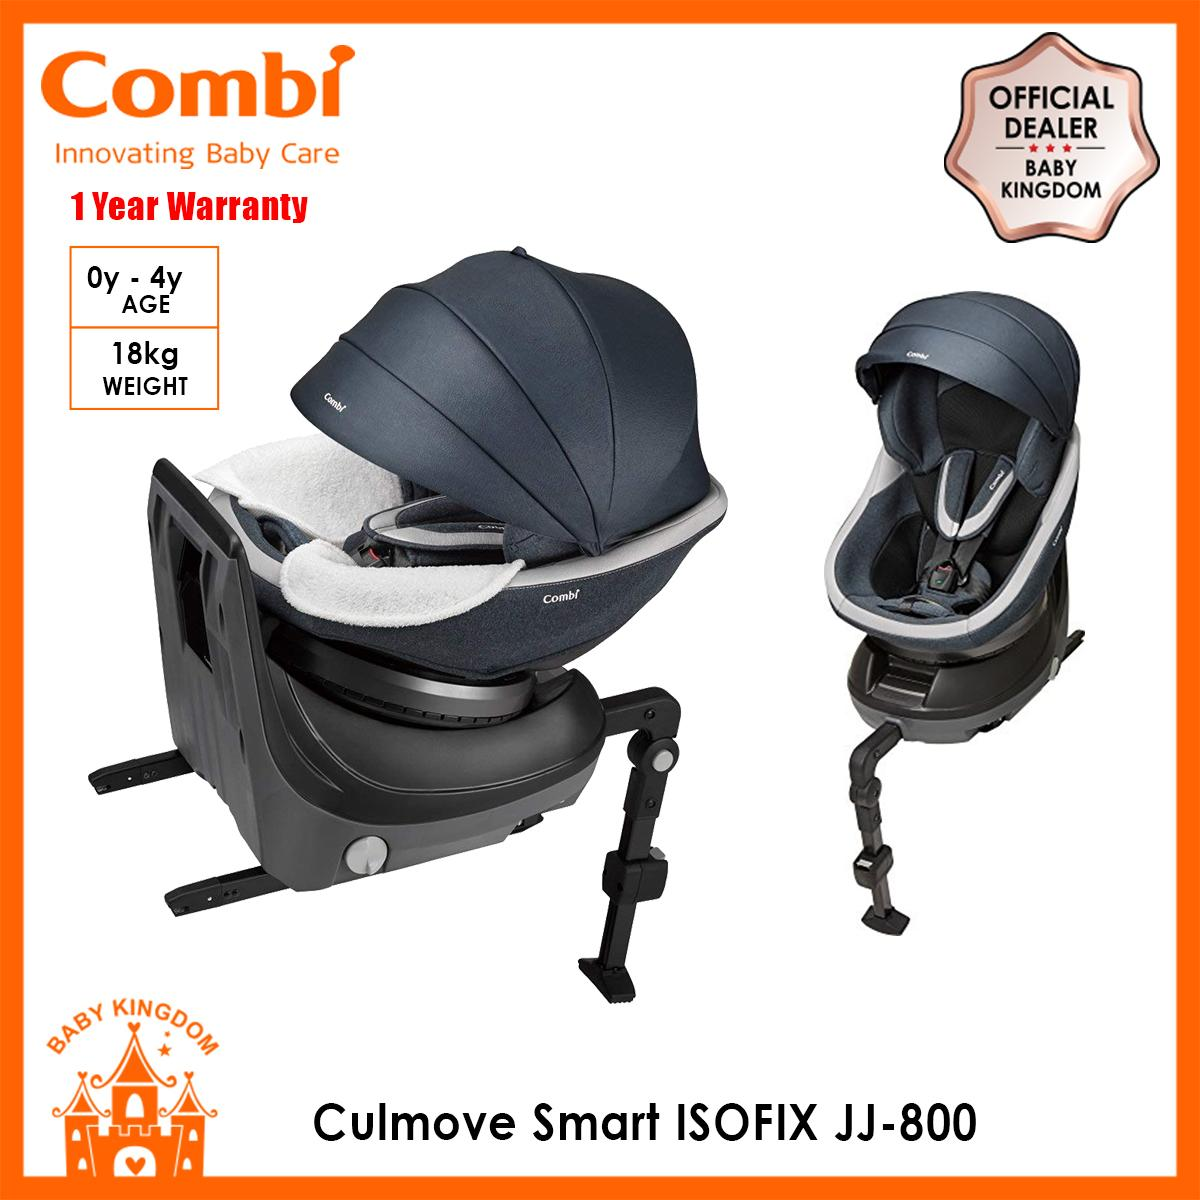 Combi Culmove Smart Isofix Jj 800 Car Seat Newrborn To 4 Years Old